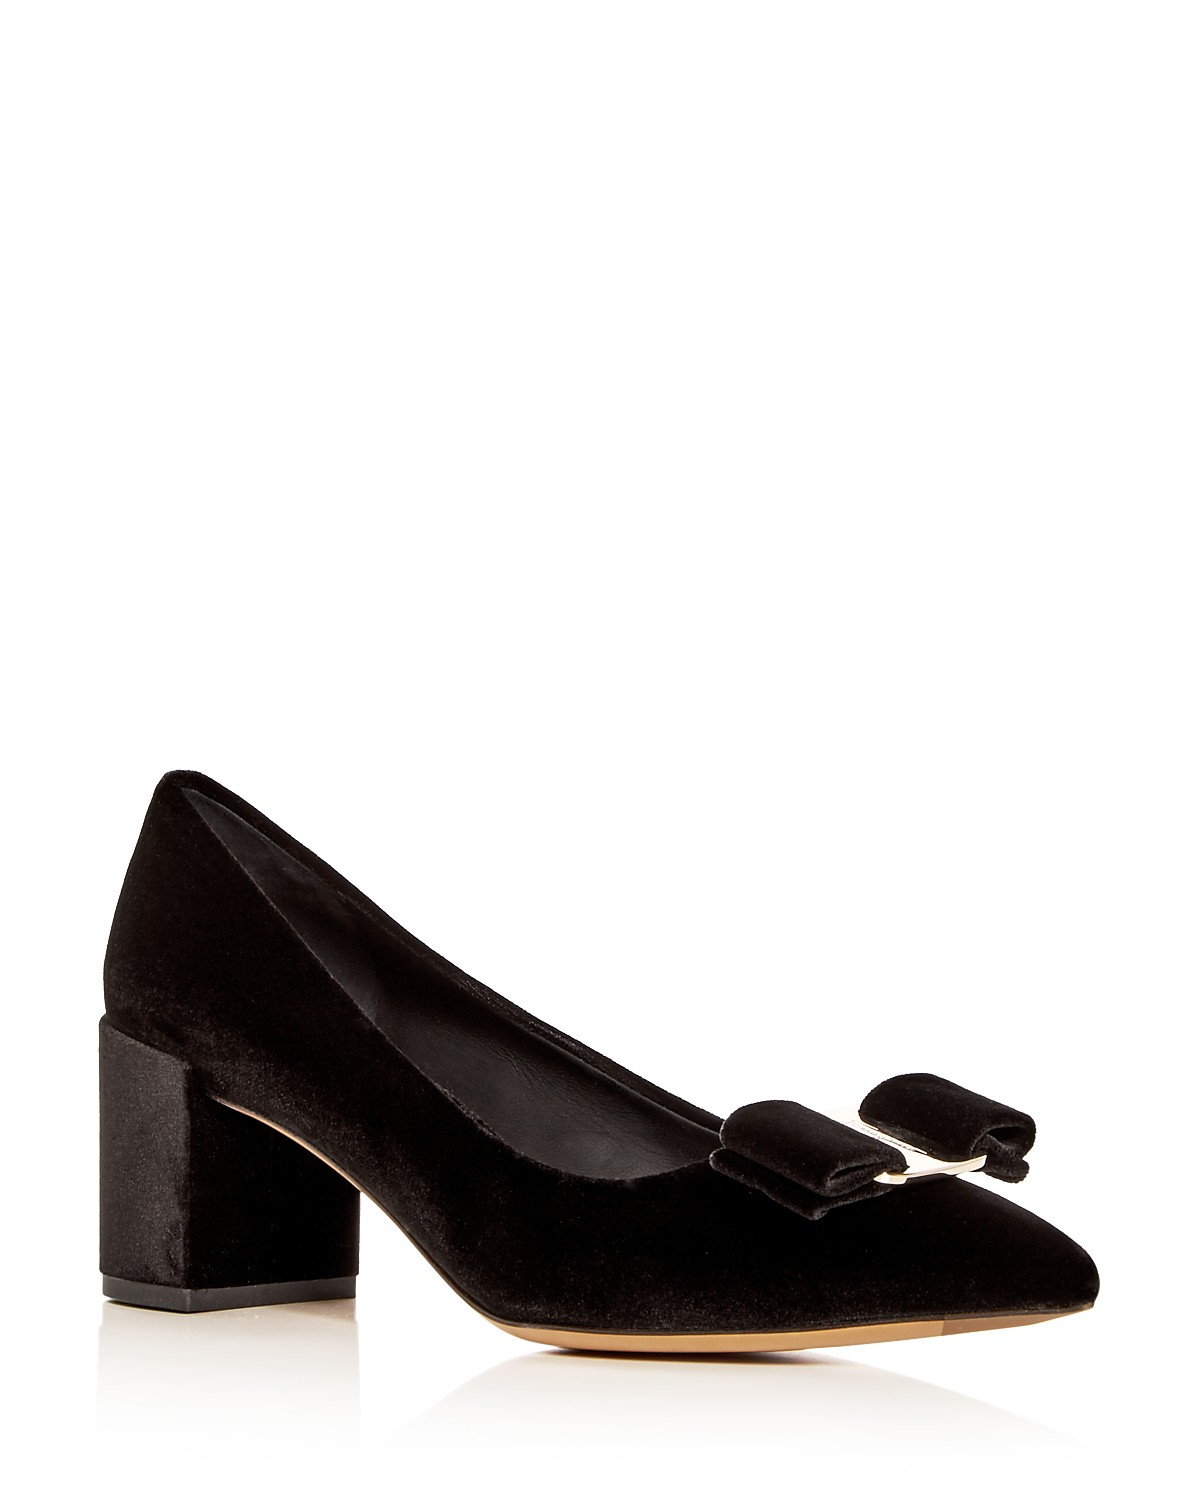 clearance professional free shipping clearance store Salvatore Ferragamo Velvet Pointed-Toe Pumps uyKGWbx0